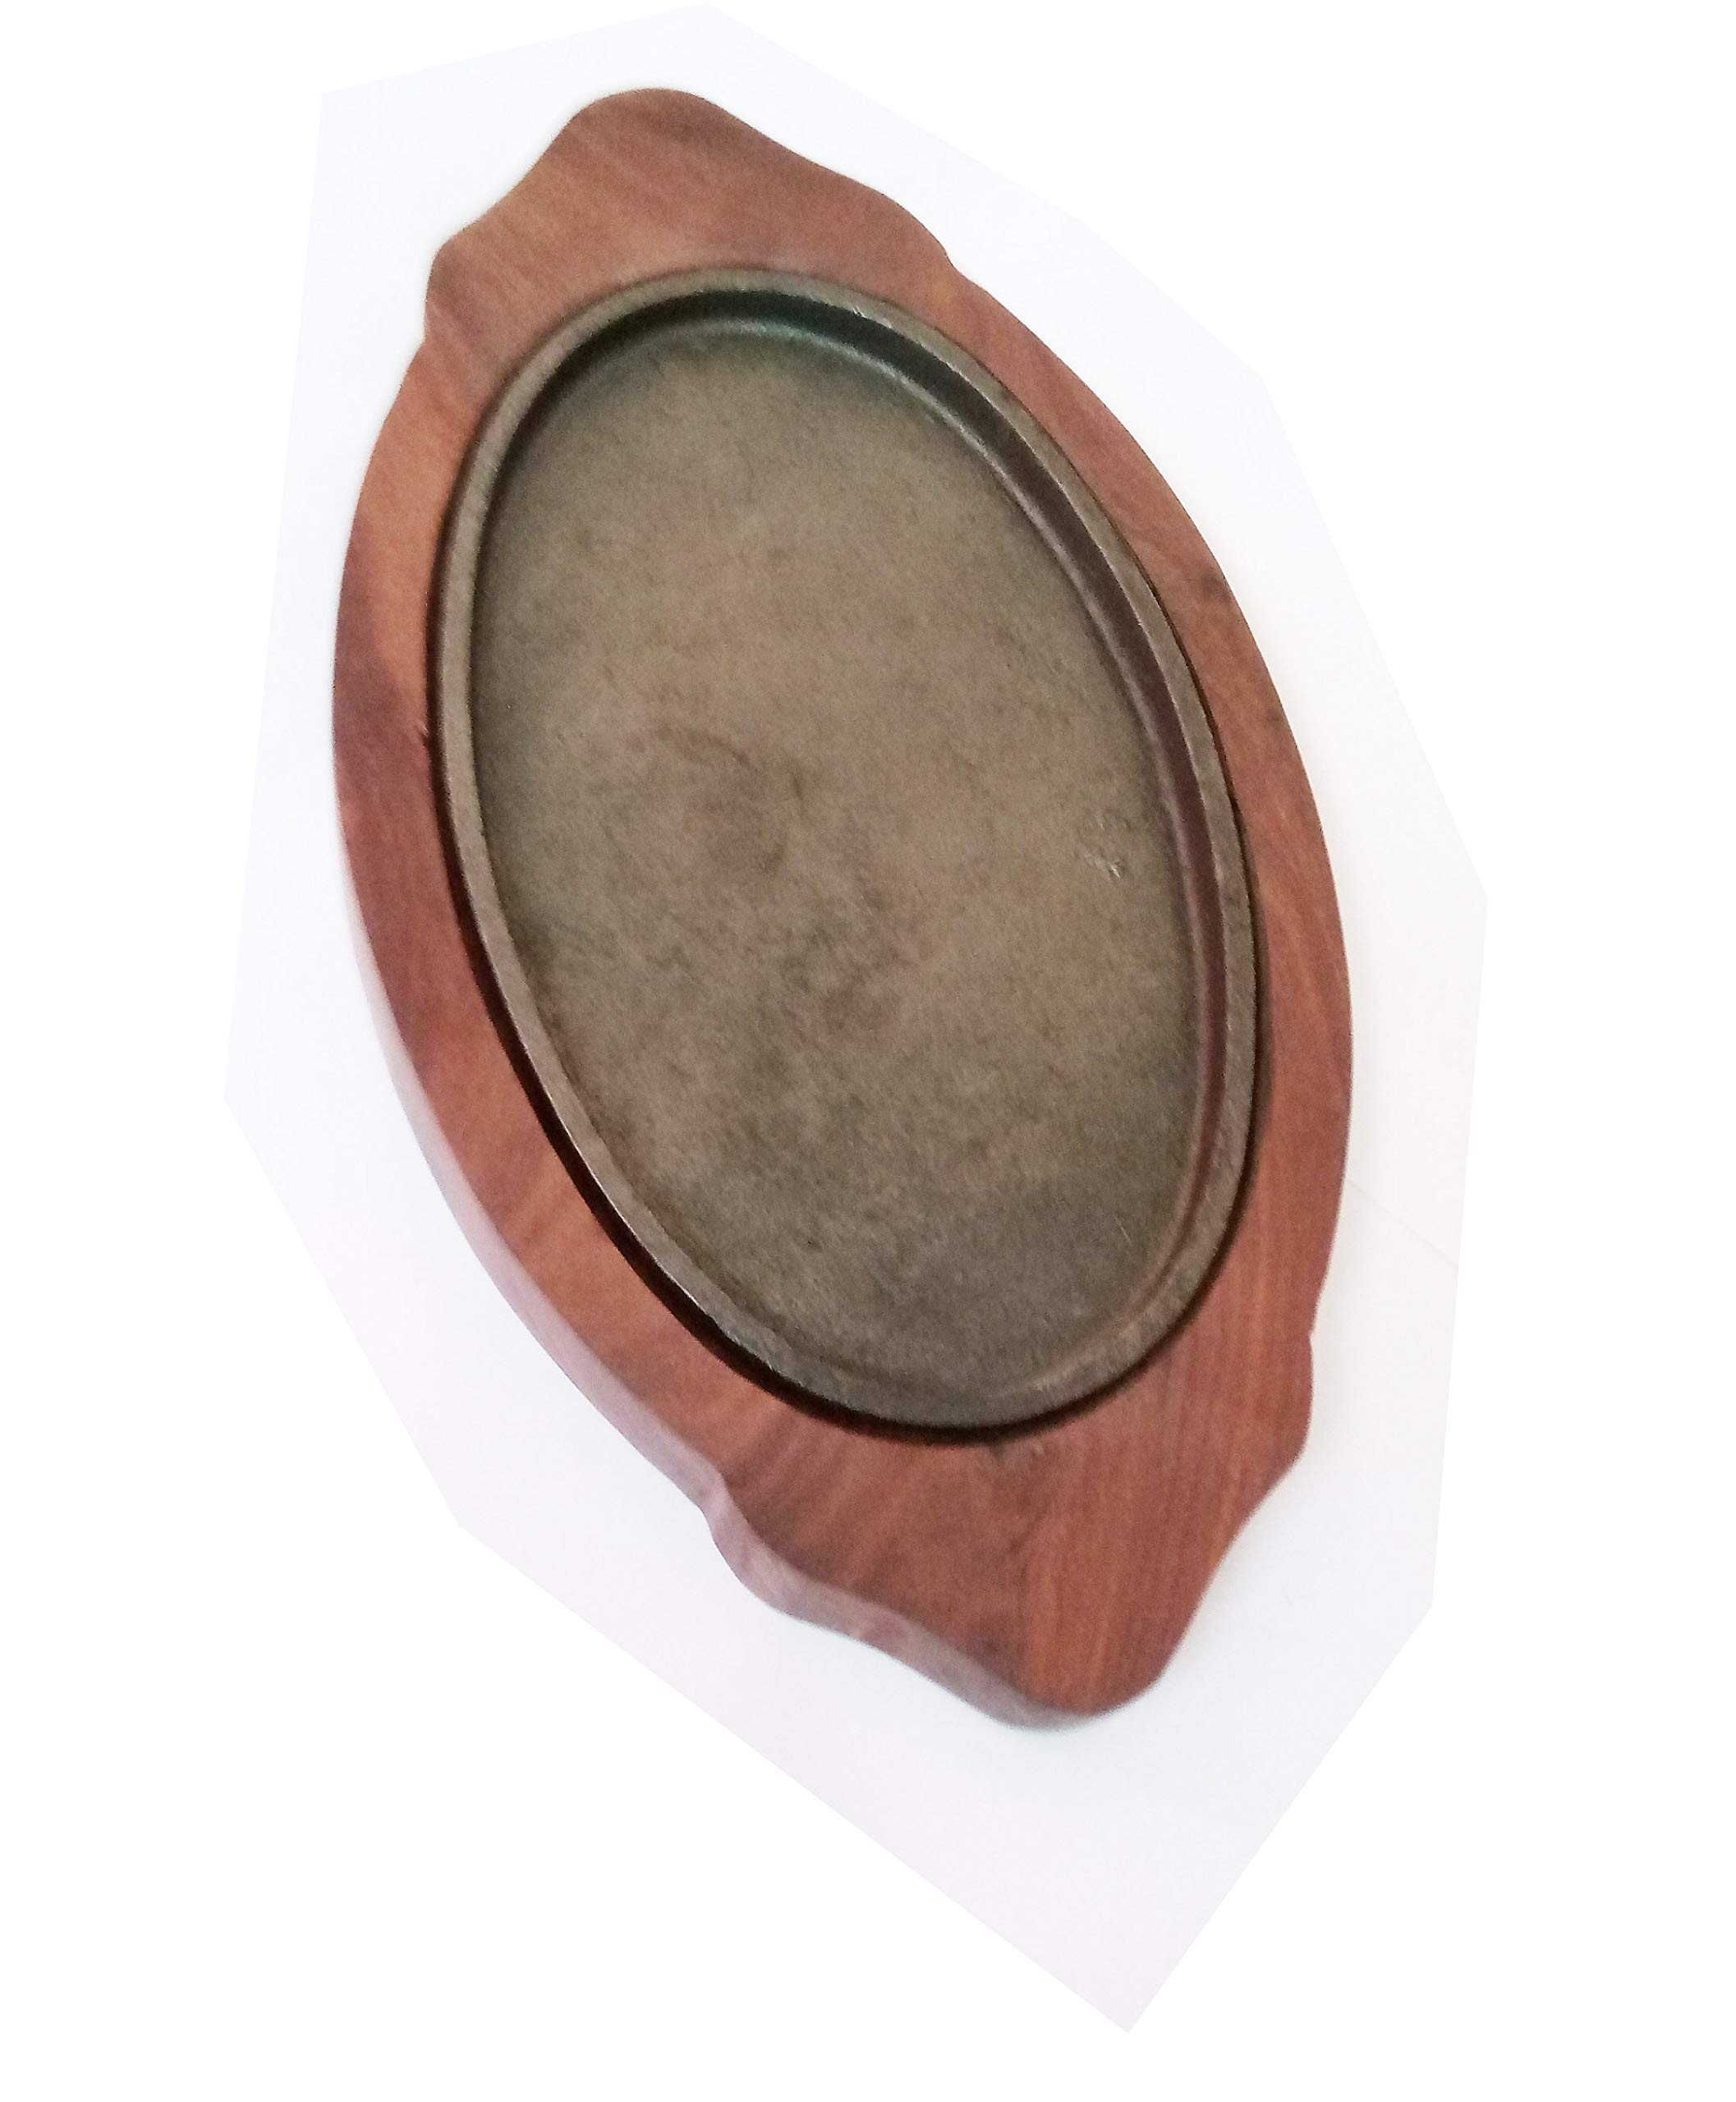 Sahishnu Online And Marketing Fajita Pan with Wooden Tray, Sizzling Brownie Sizzler Plate/Tray with Wooden Base Oval by Shradha Trading (Image #7)